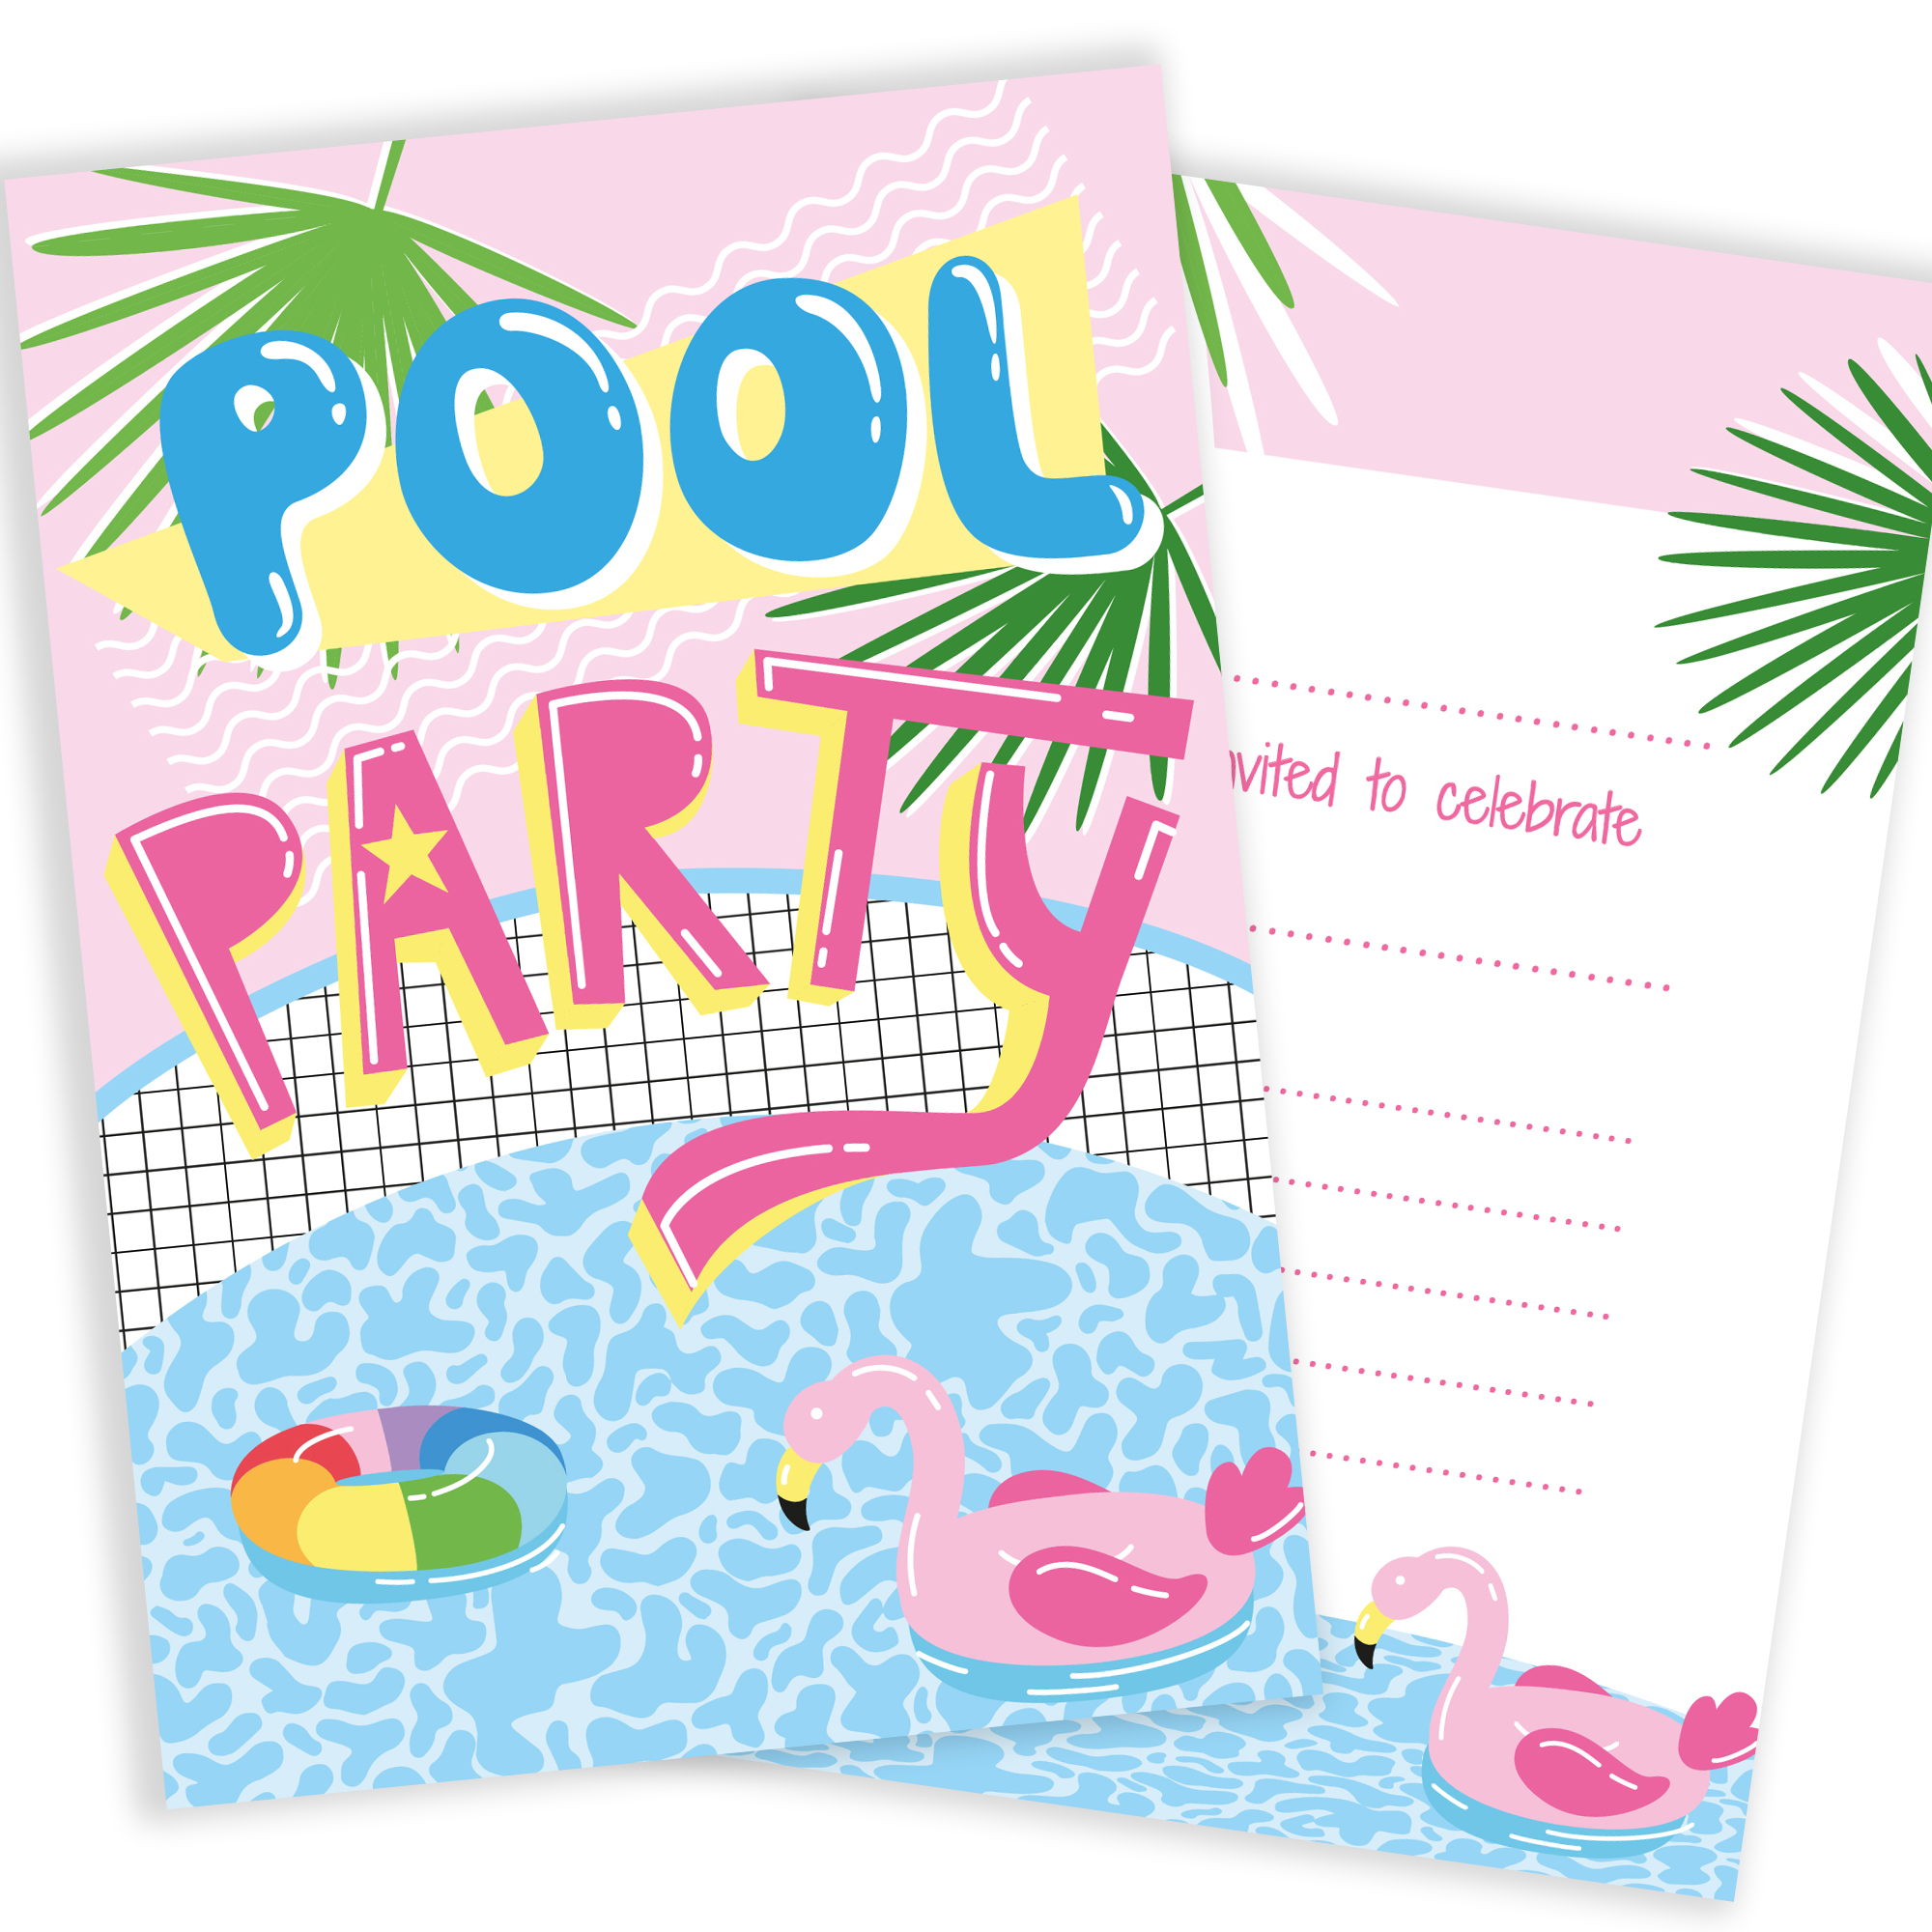 pool party invites  u2013 pink tropical style  u2013 ready to write